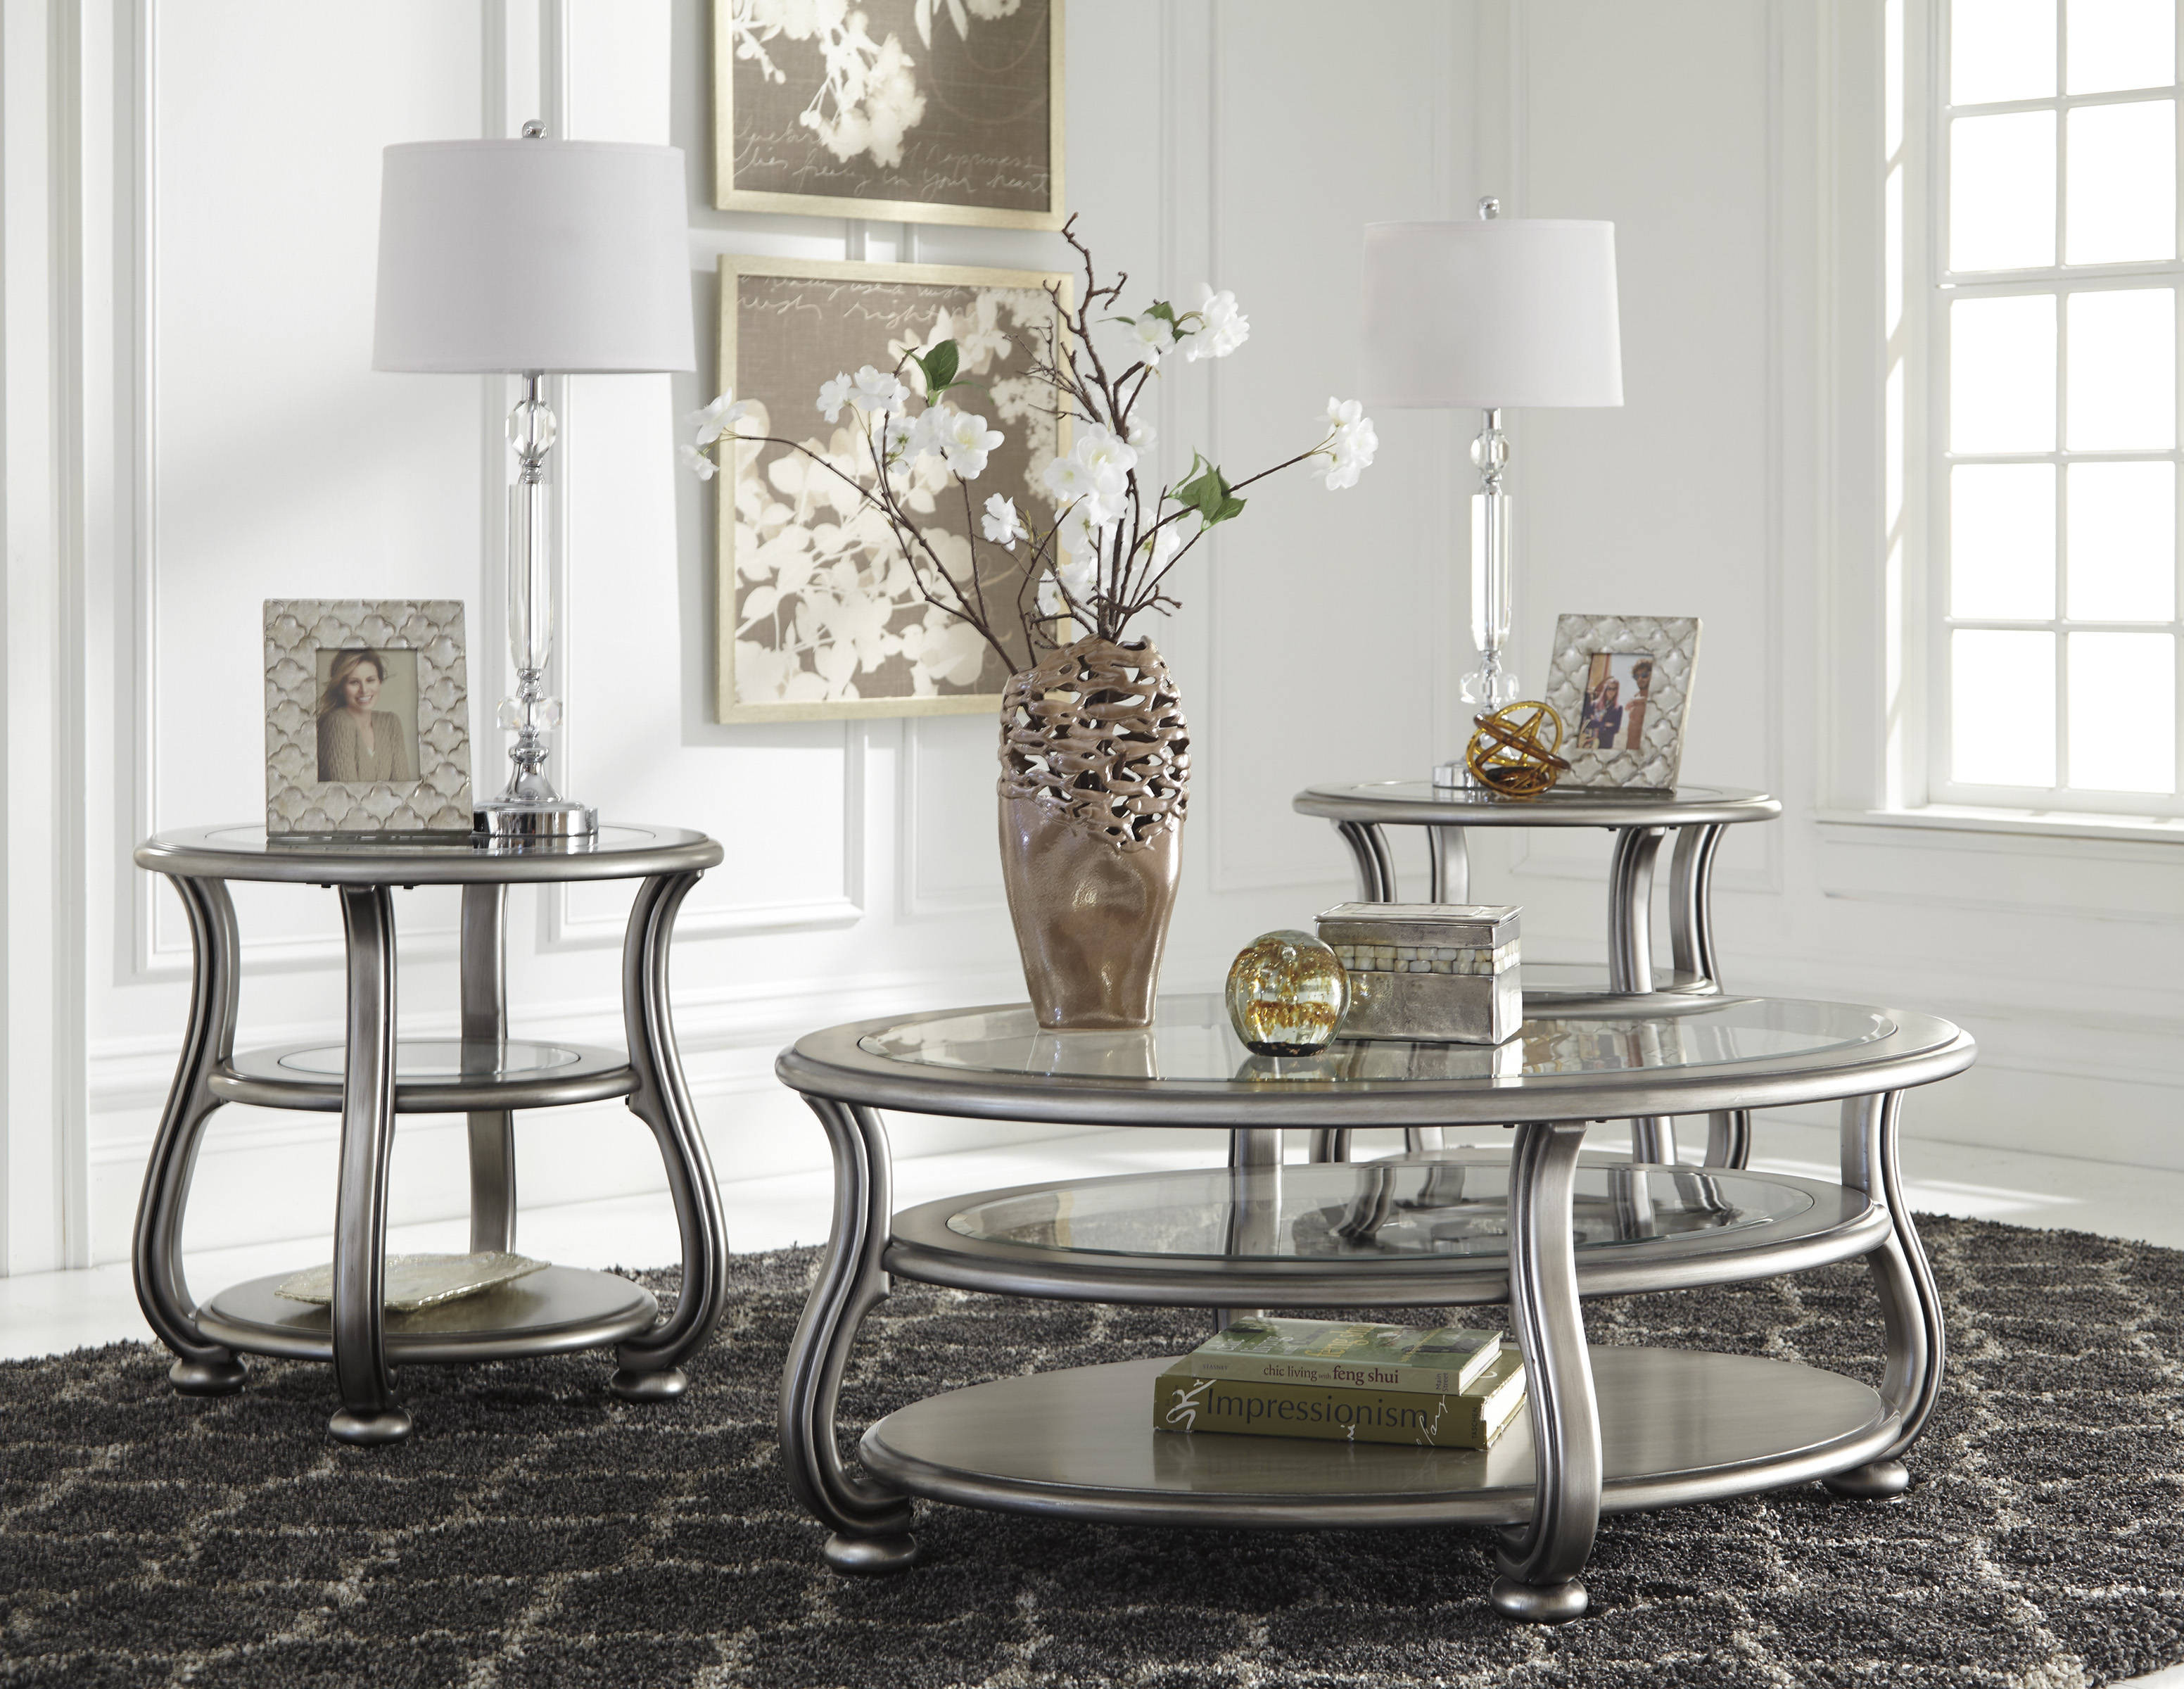 Best ideas about Ashley Furniture Coffee Tables . Save or Pin Ashley Furniture Coralayne 3pc Coffee Table Set Now.